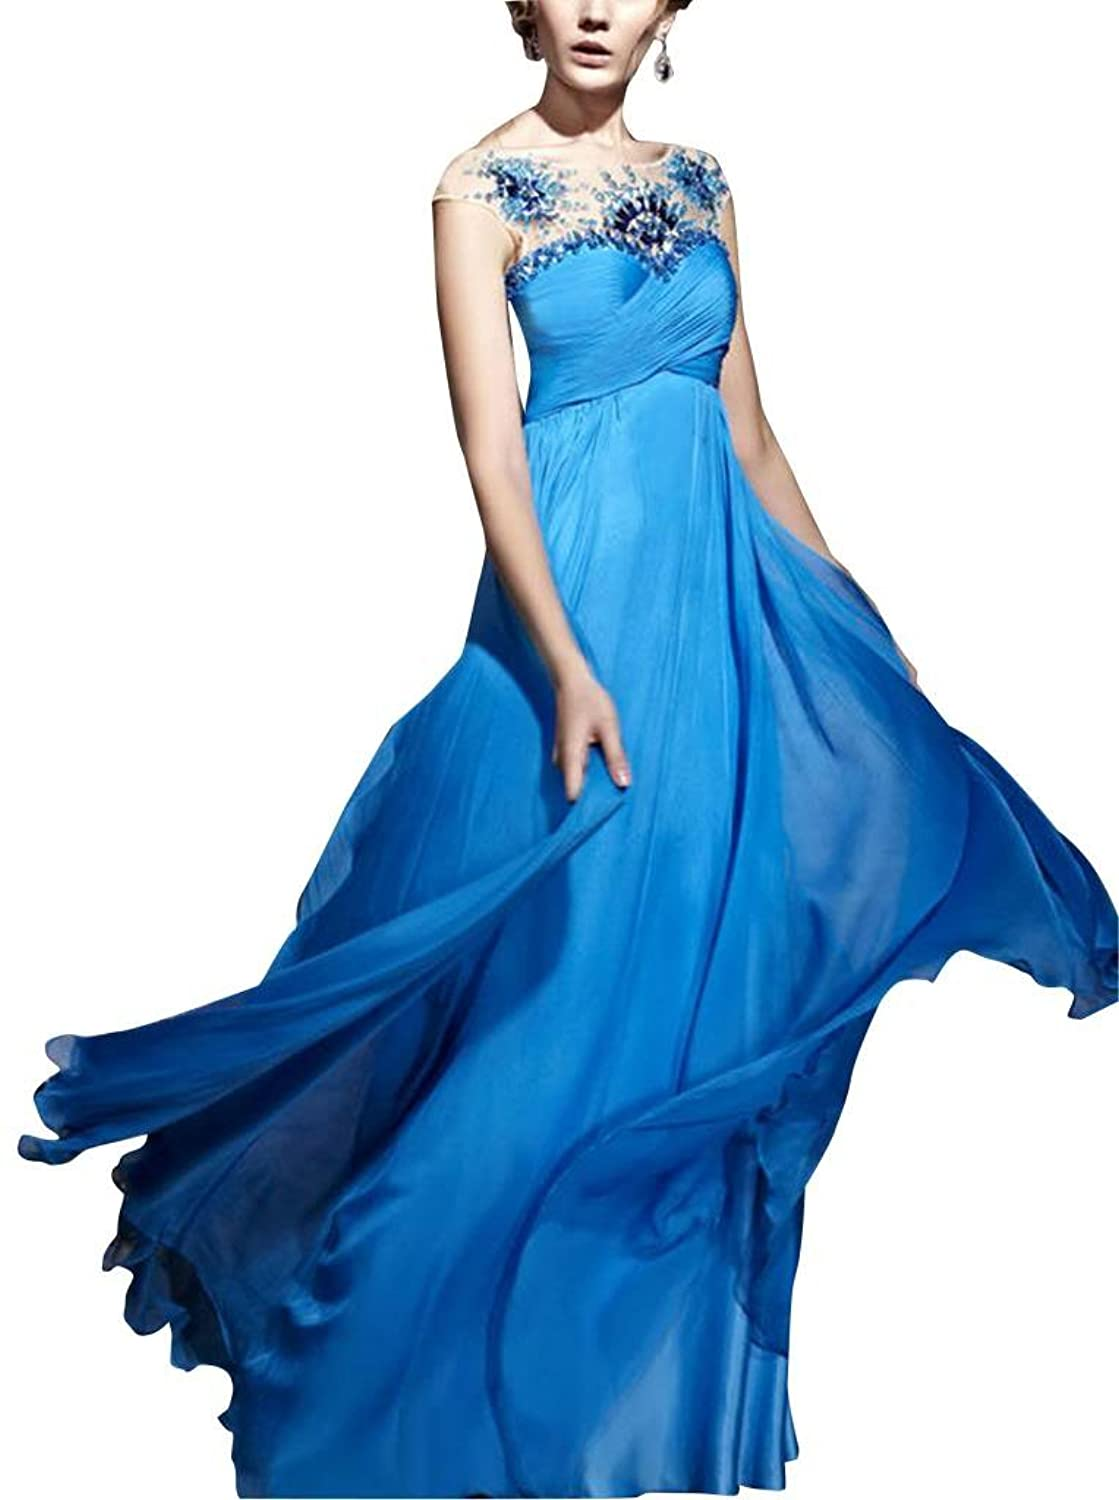 GEORGE BRIDE Blue Sheath/ Column Off Shoulder Floor-Length Chiffon Evening Dress With Beaded Lace Appliques